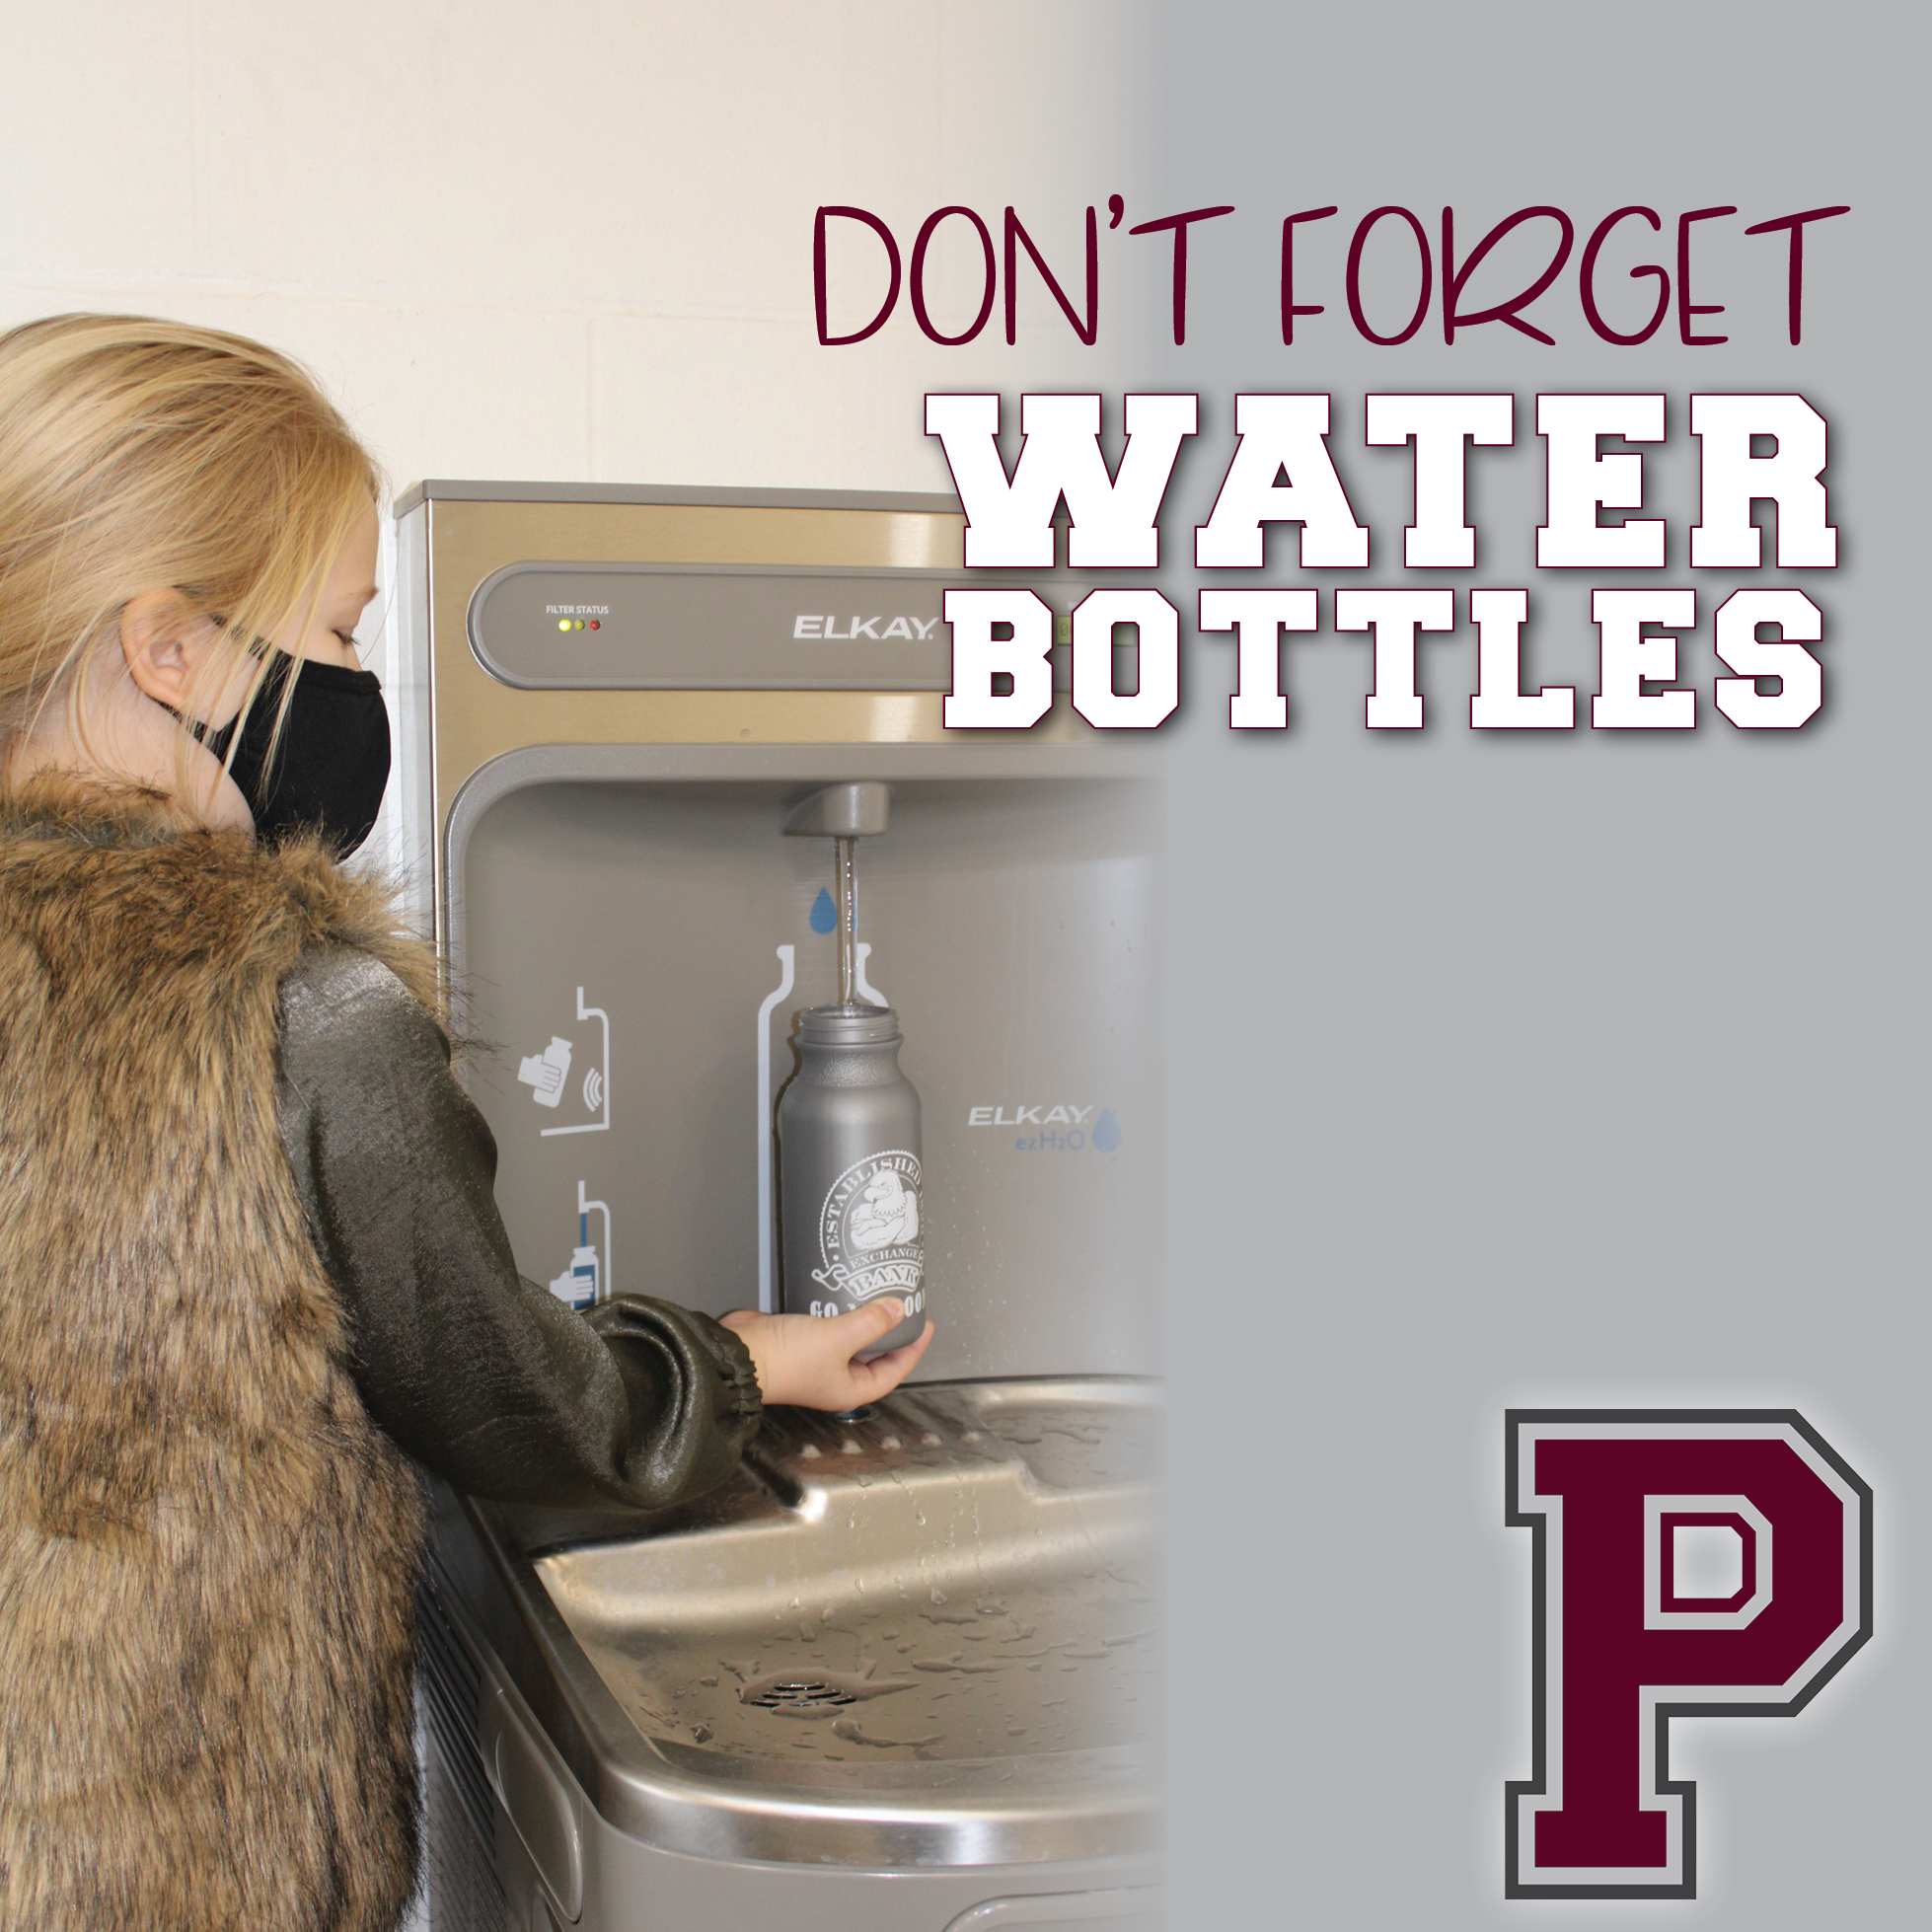 Don't forget to bring your water bottle.